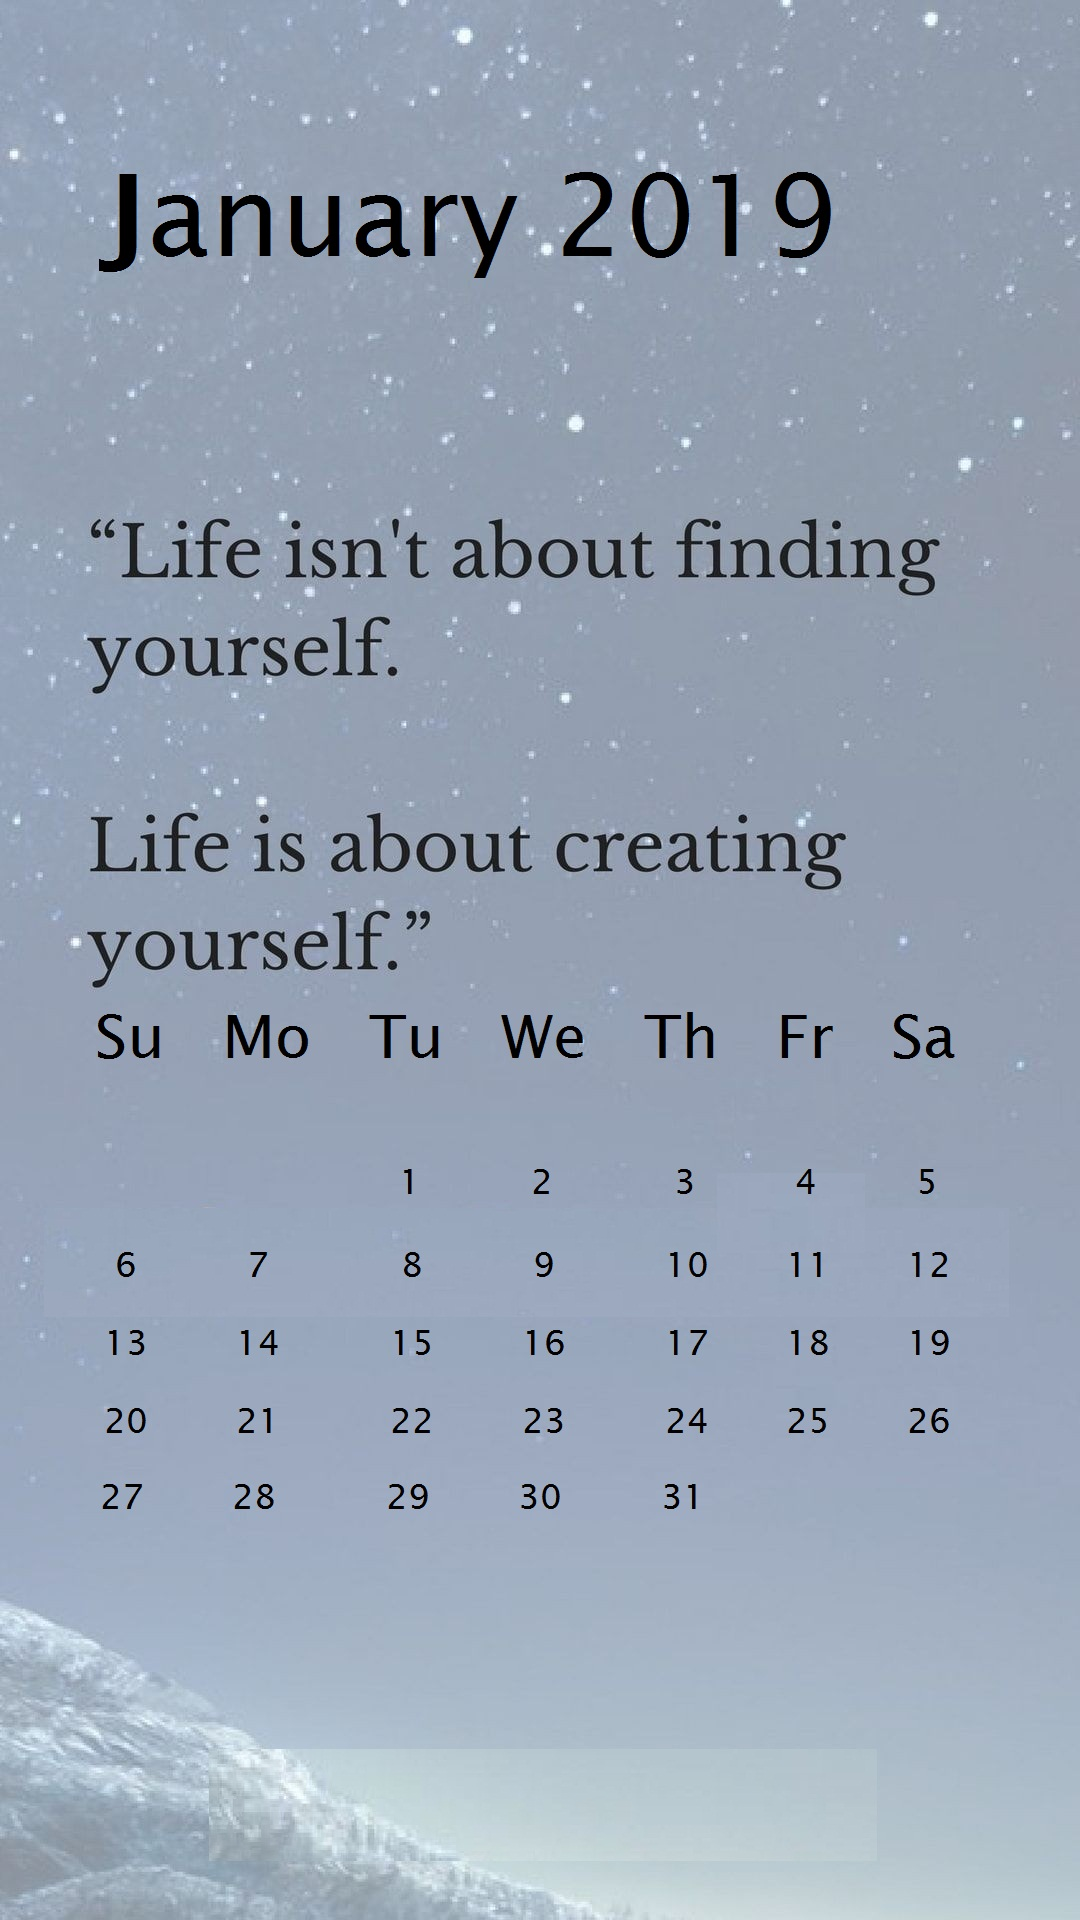 Winter Inspirational January 2019 iPhone Calendar